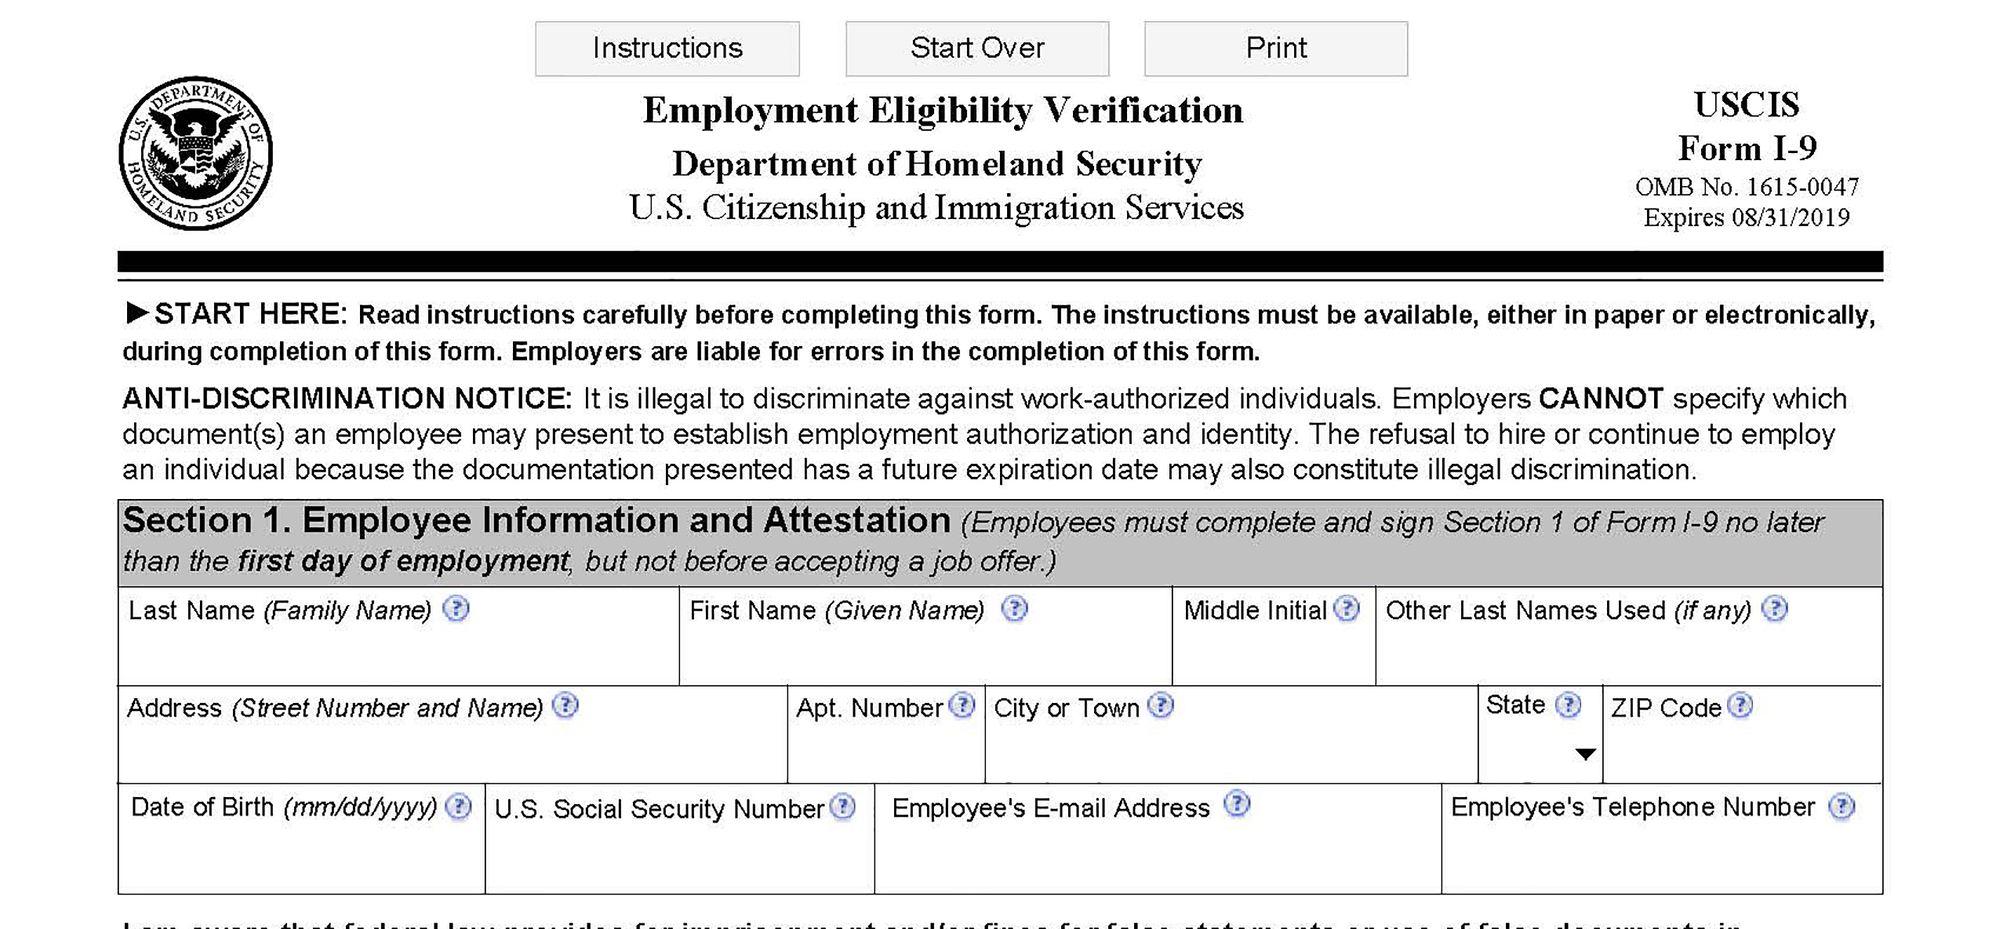 Use Form I-9 Dated 11/14/2016